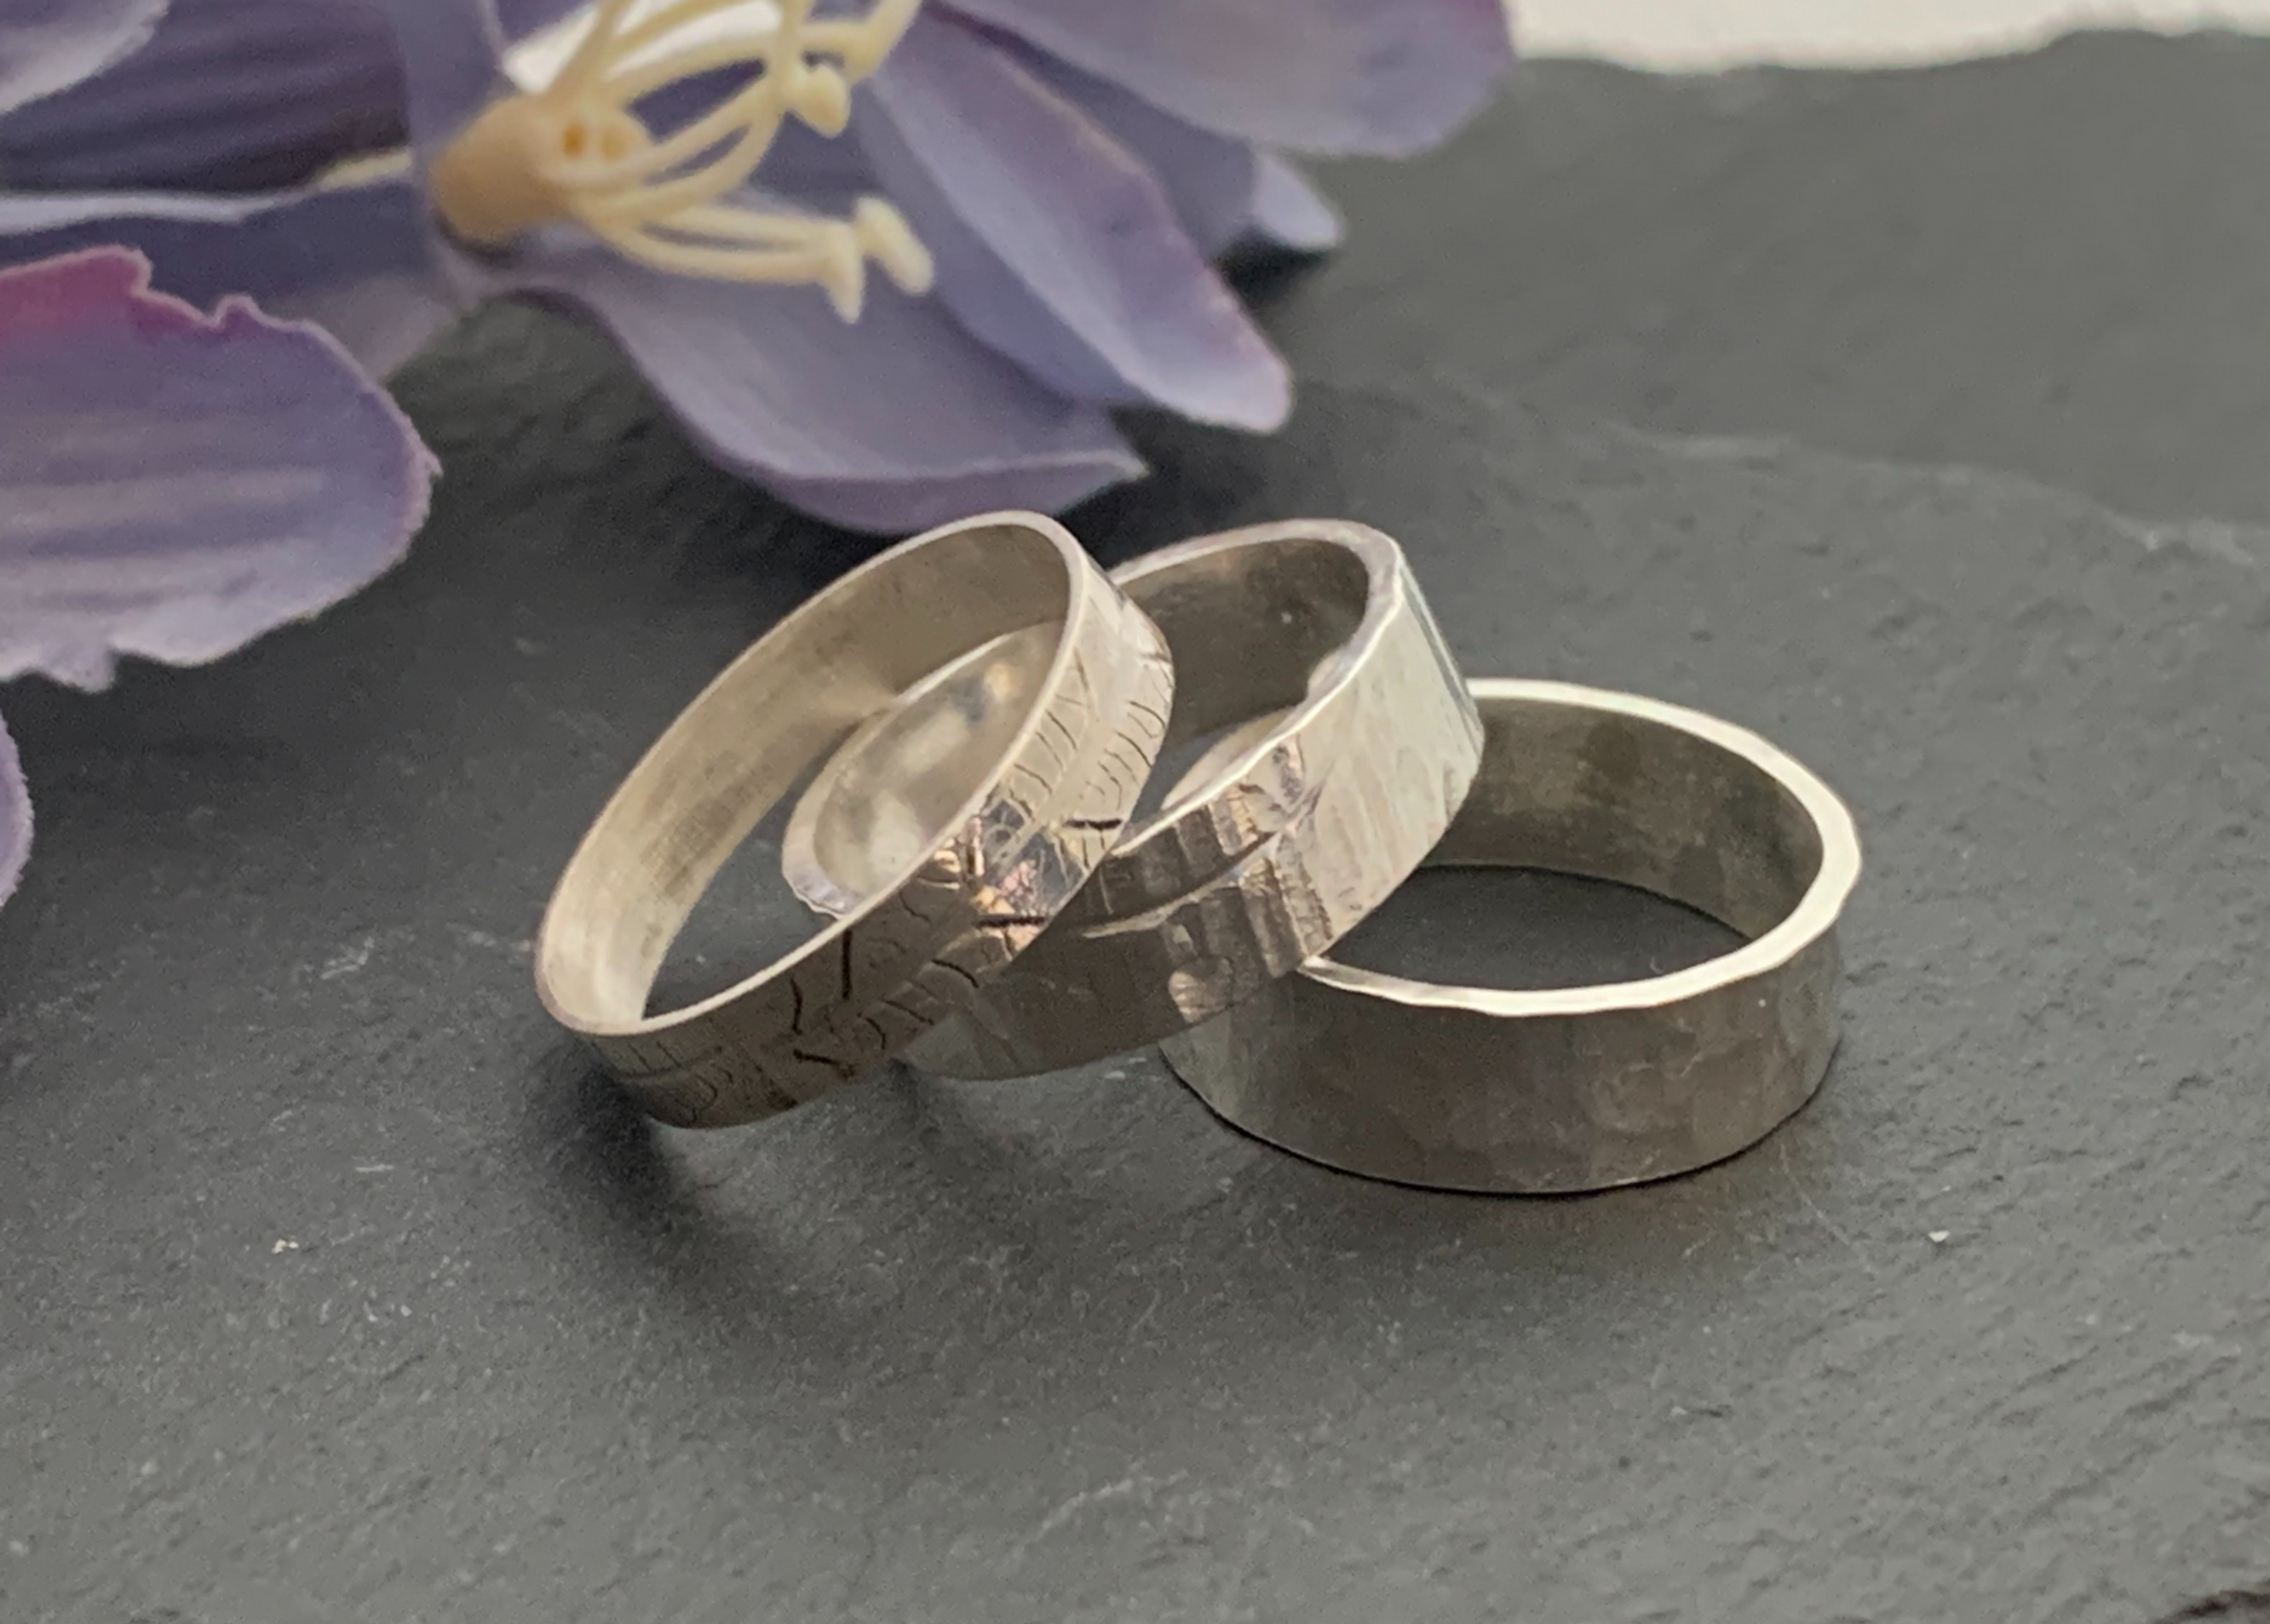 Ring workshop - Textured band 11 - 4 pm